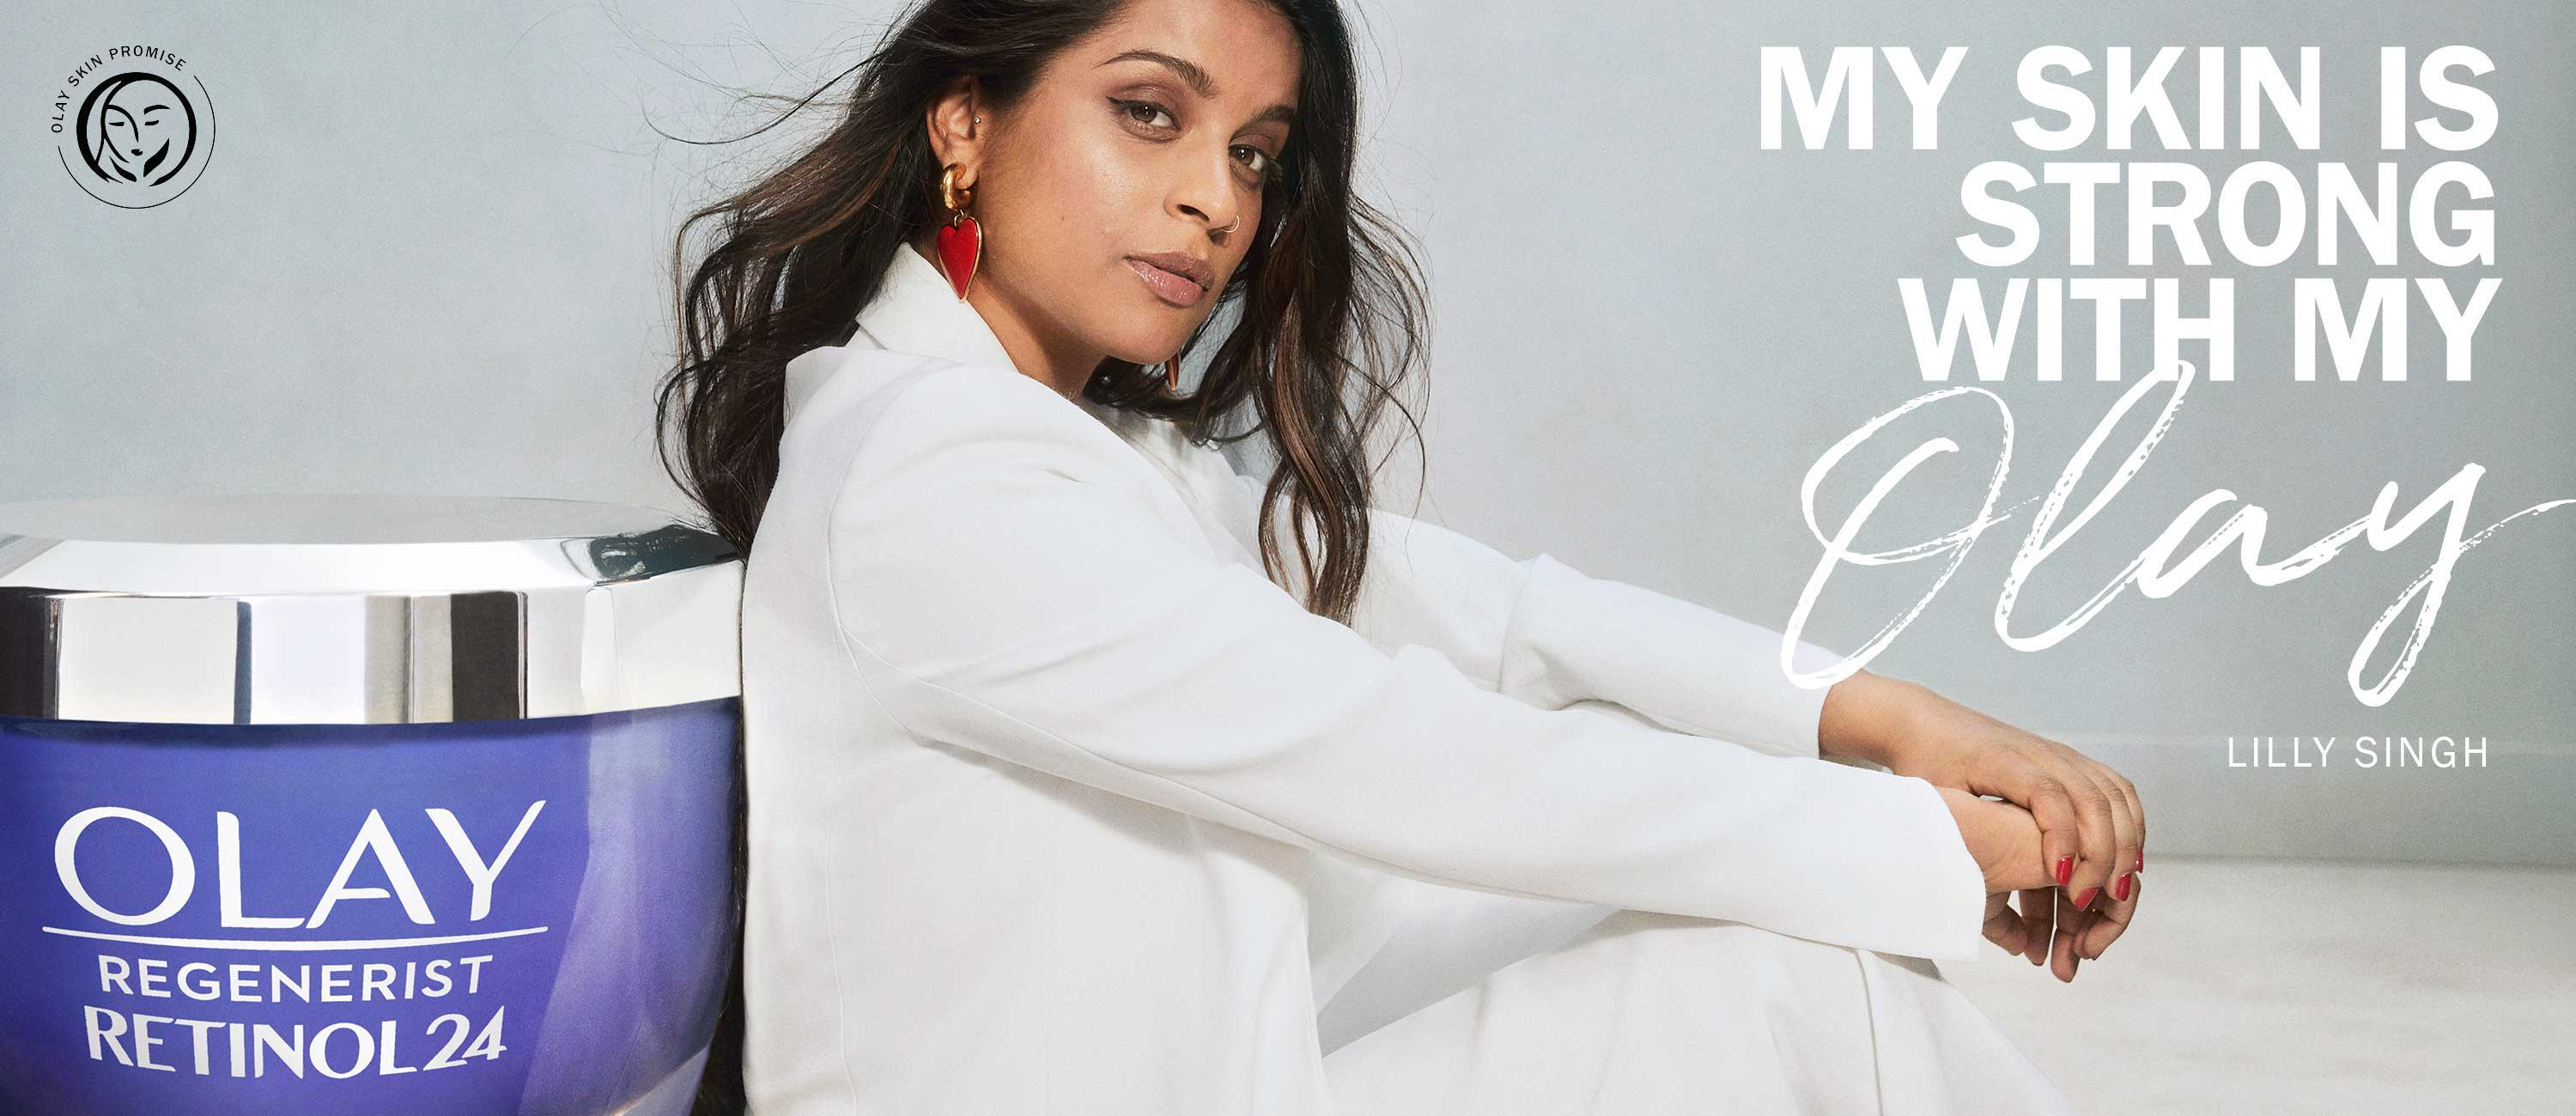 Homepage banner- Lilly Sing m Skins is Strong with my Olay campaing banner